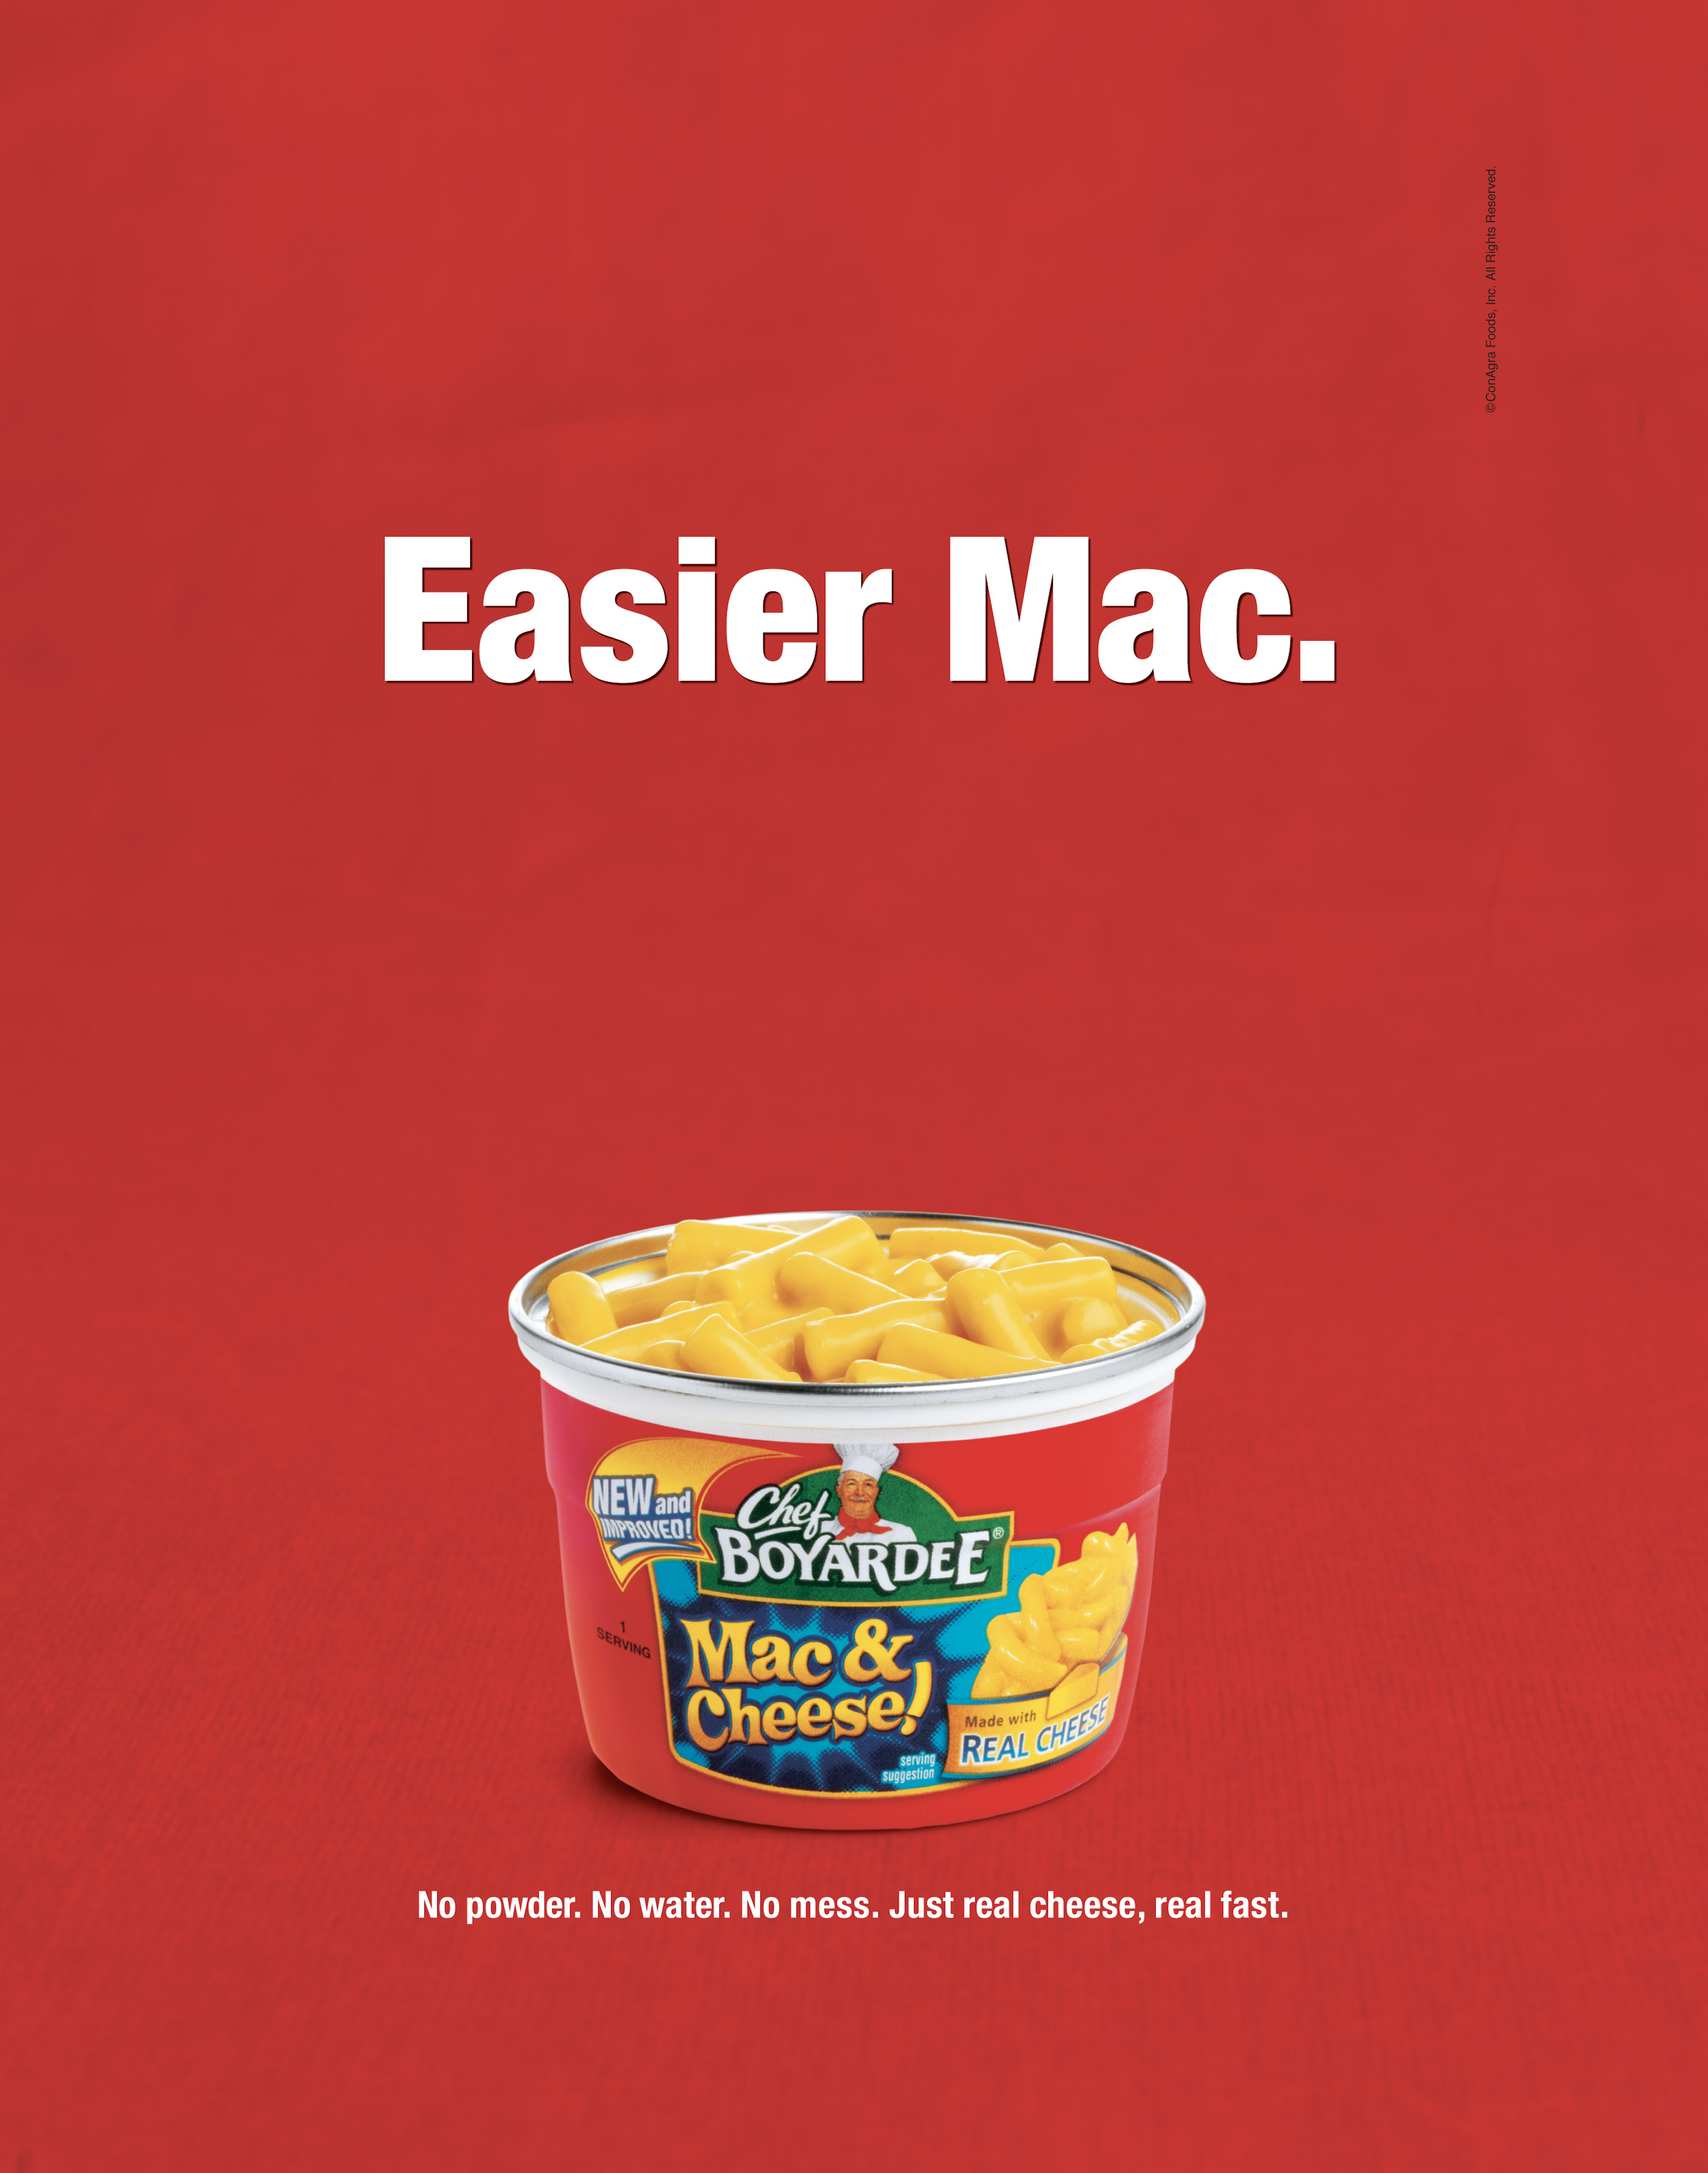 Robyn Valarik San Francisco Food & Drink Stylist - Chef-Boyardee, mac & cheese, microwavable, individual, portion, cheesy, advertising, photography, red